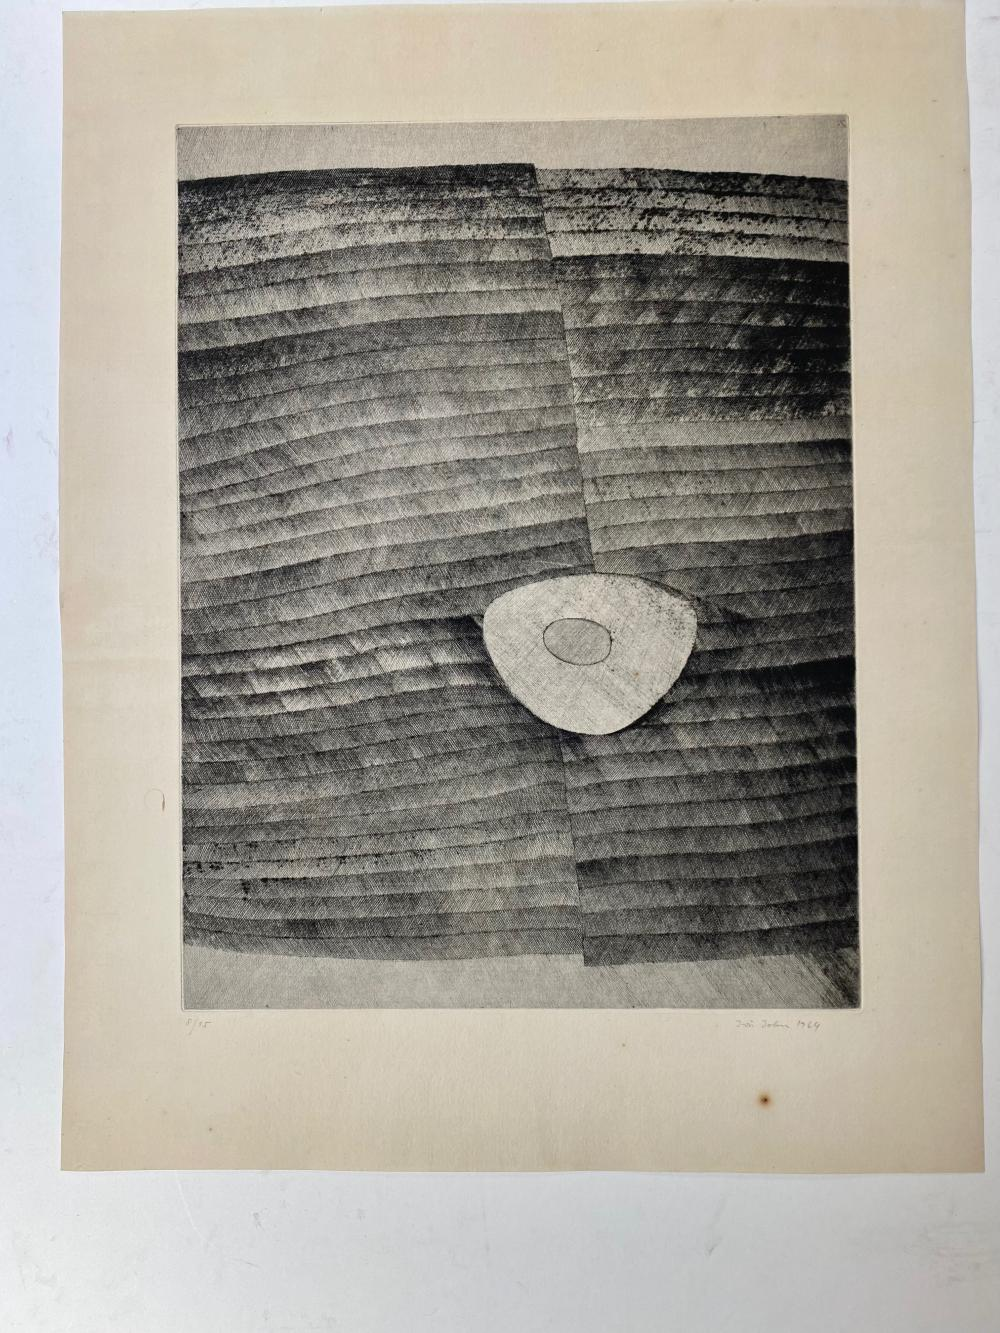 JIRÍ, John (1923-72). Untitled. 1964. Etching. 49 x 37 cm. Signed, dated